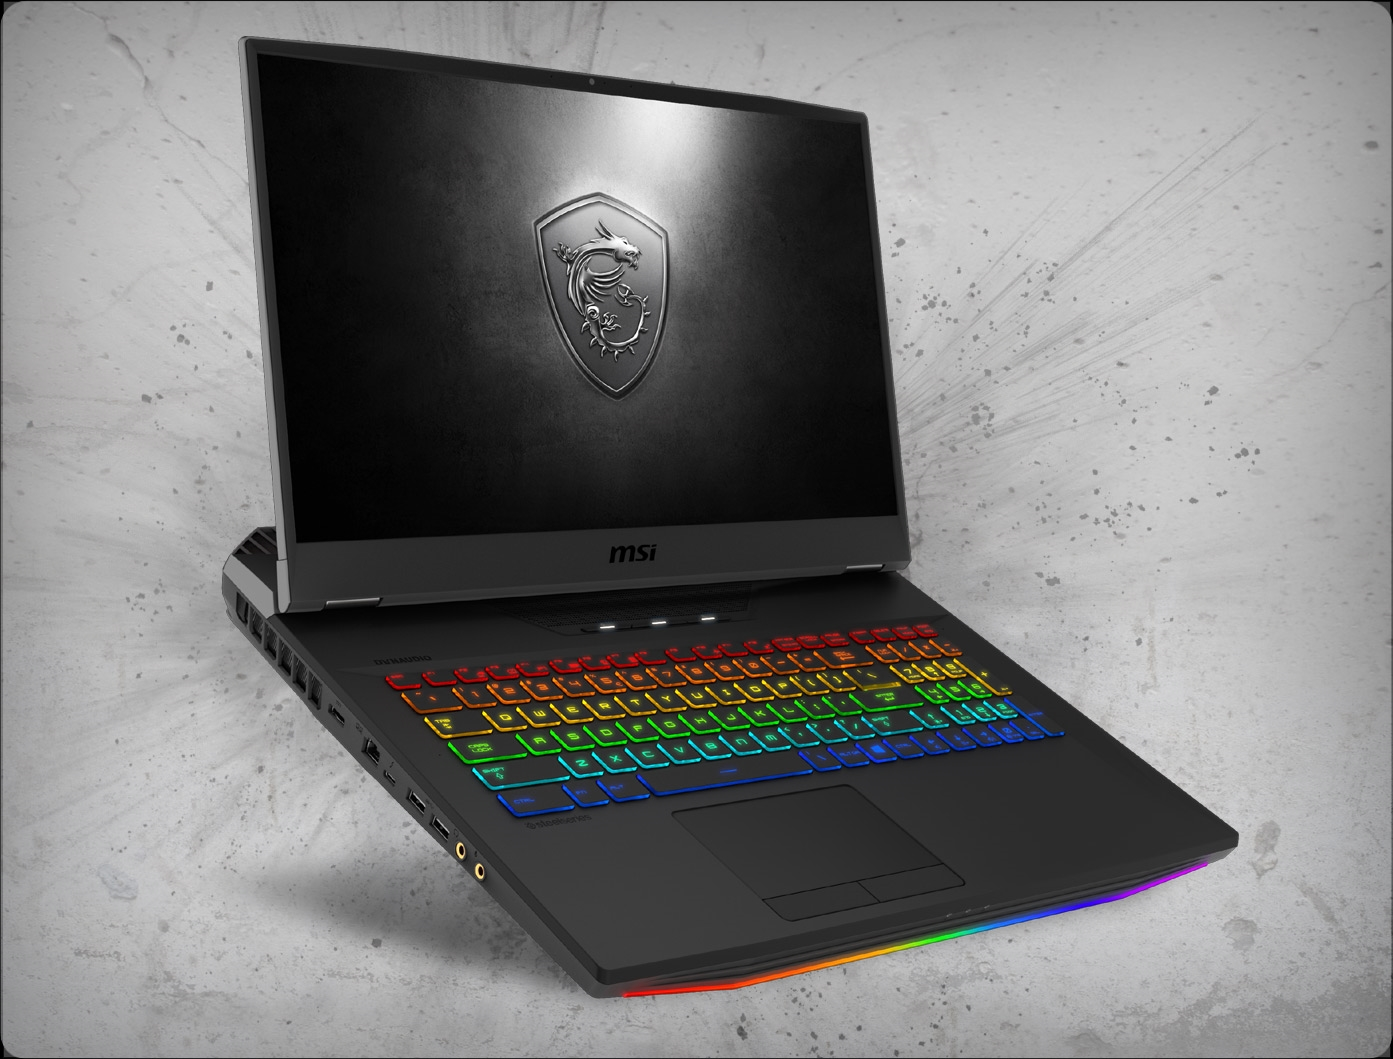 MSI GT76 TITAN DT-090 240Hz nVidia RTX 2080 Desktop GPU 8GB GDDR6, 9th Gen  Intel i7-9700K Desktop CPU